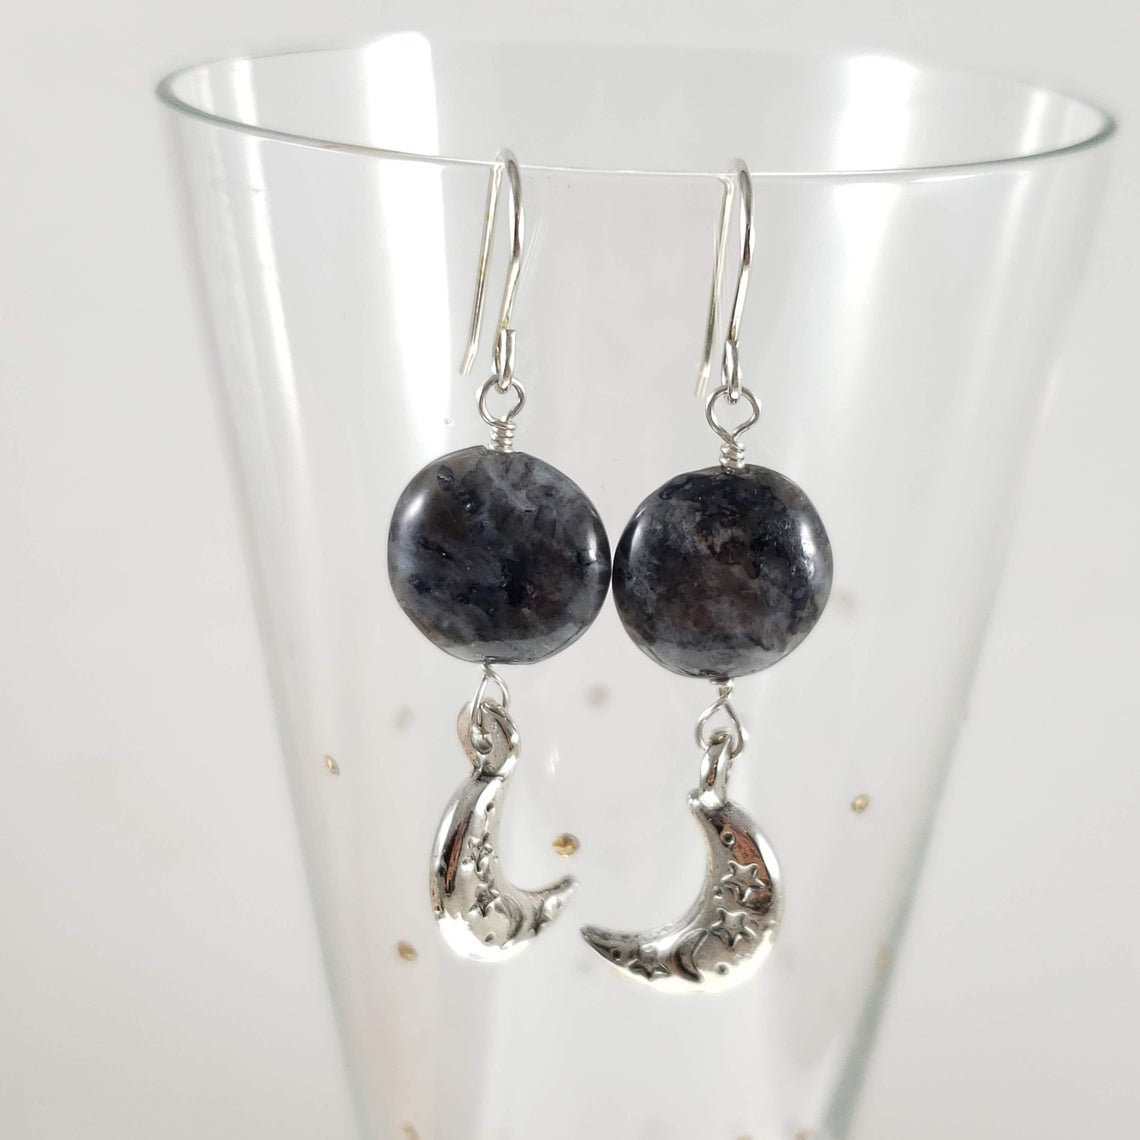 Pewter moon earrings with black labradorite